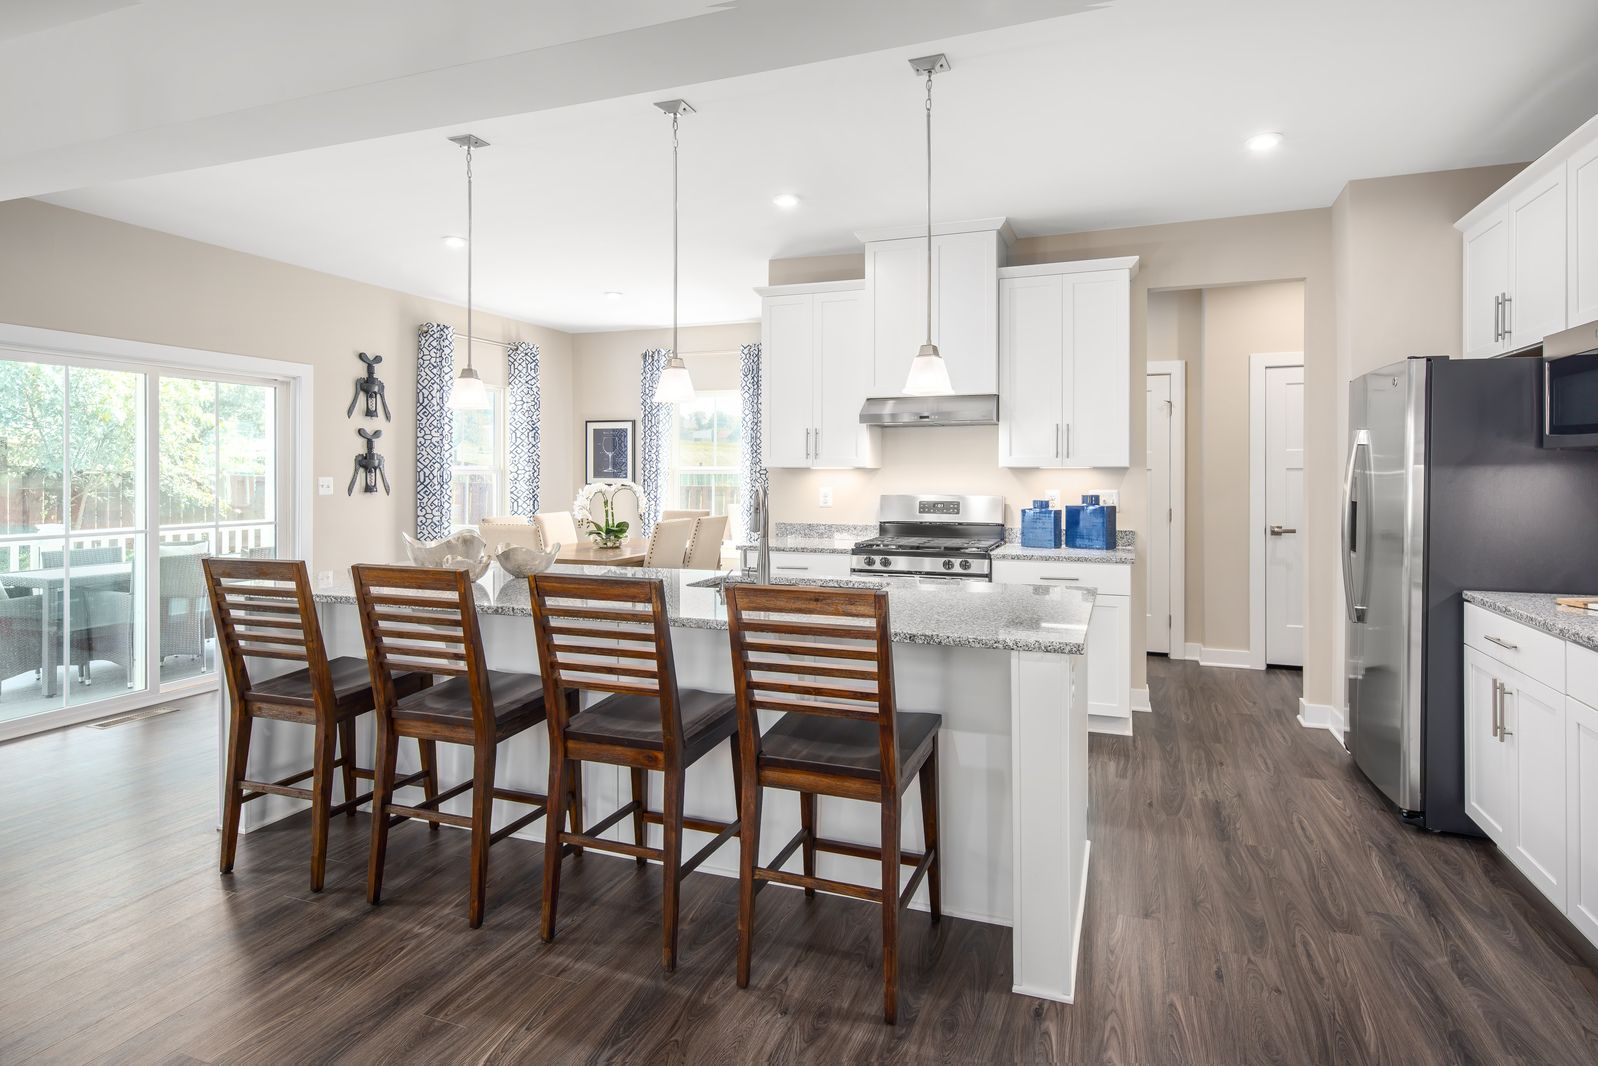 Kitchen featured in the Columbia By HeartlandHomes in Morgantown, WV